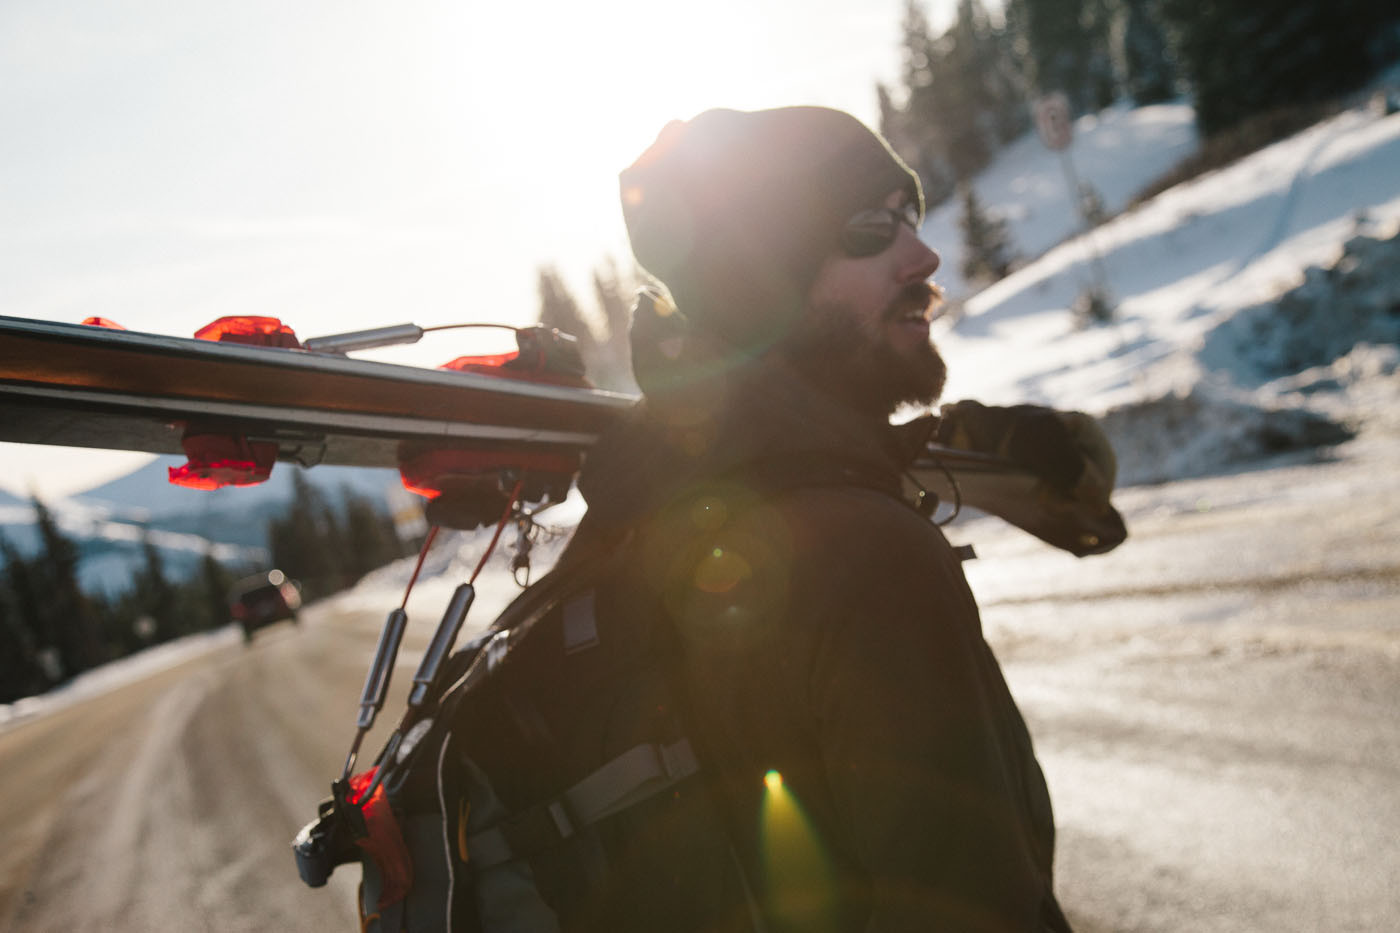 Aaron Prochaska hiking to ski at Berthoud Pass, Colorado